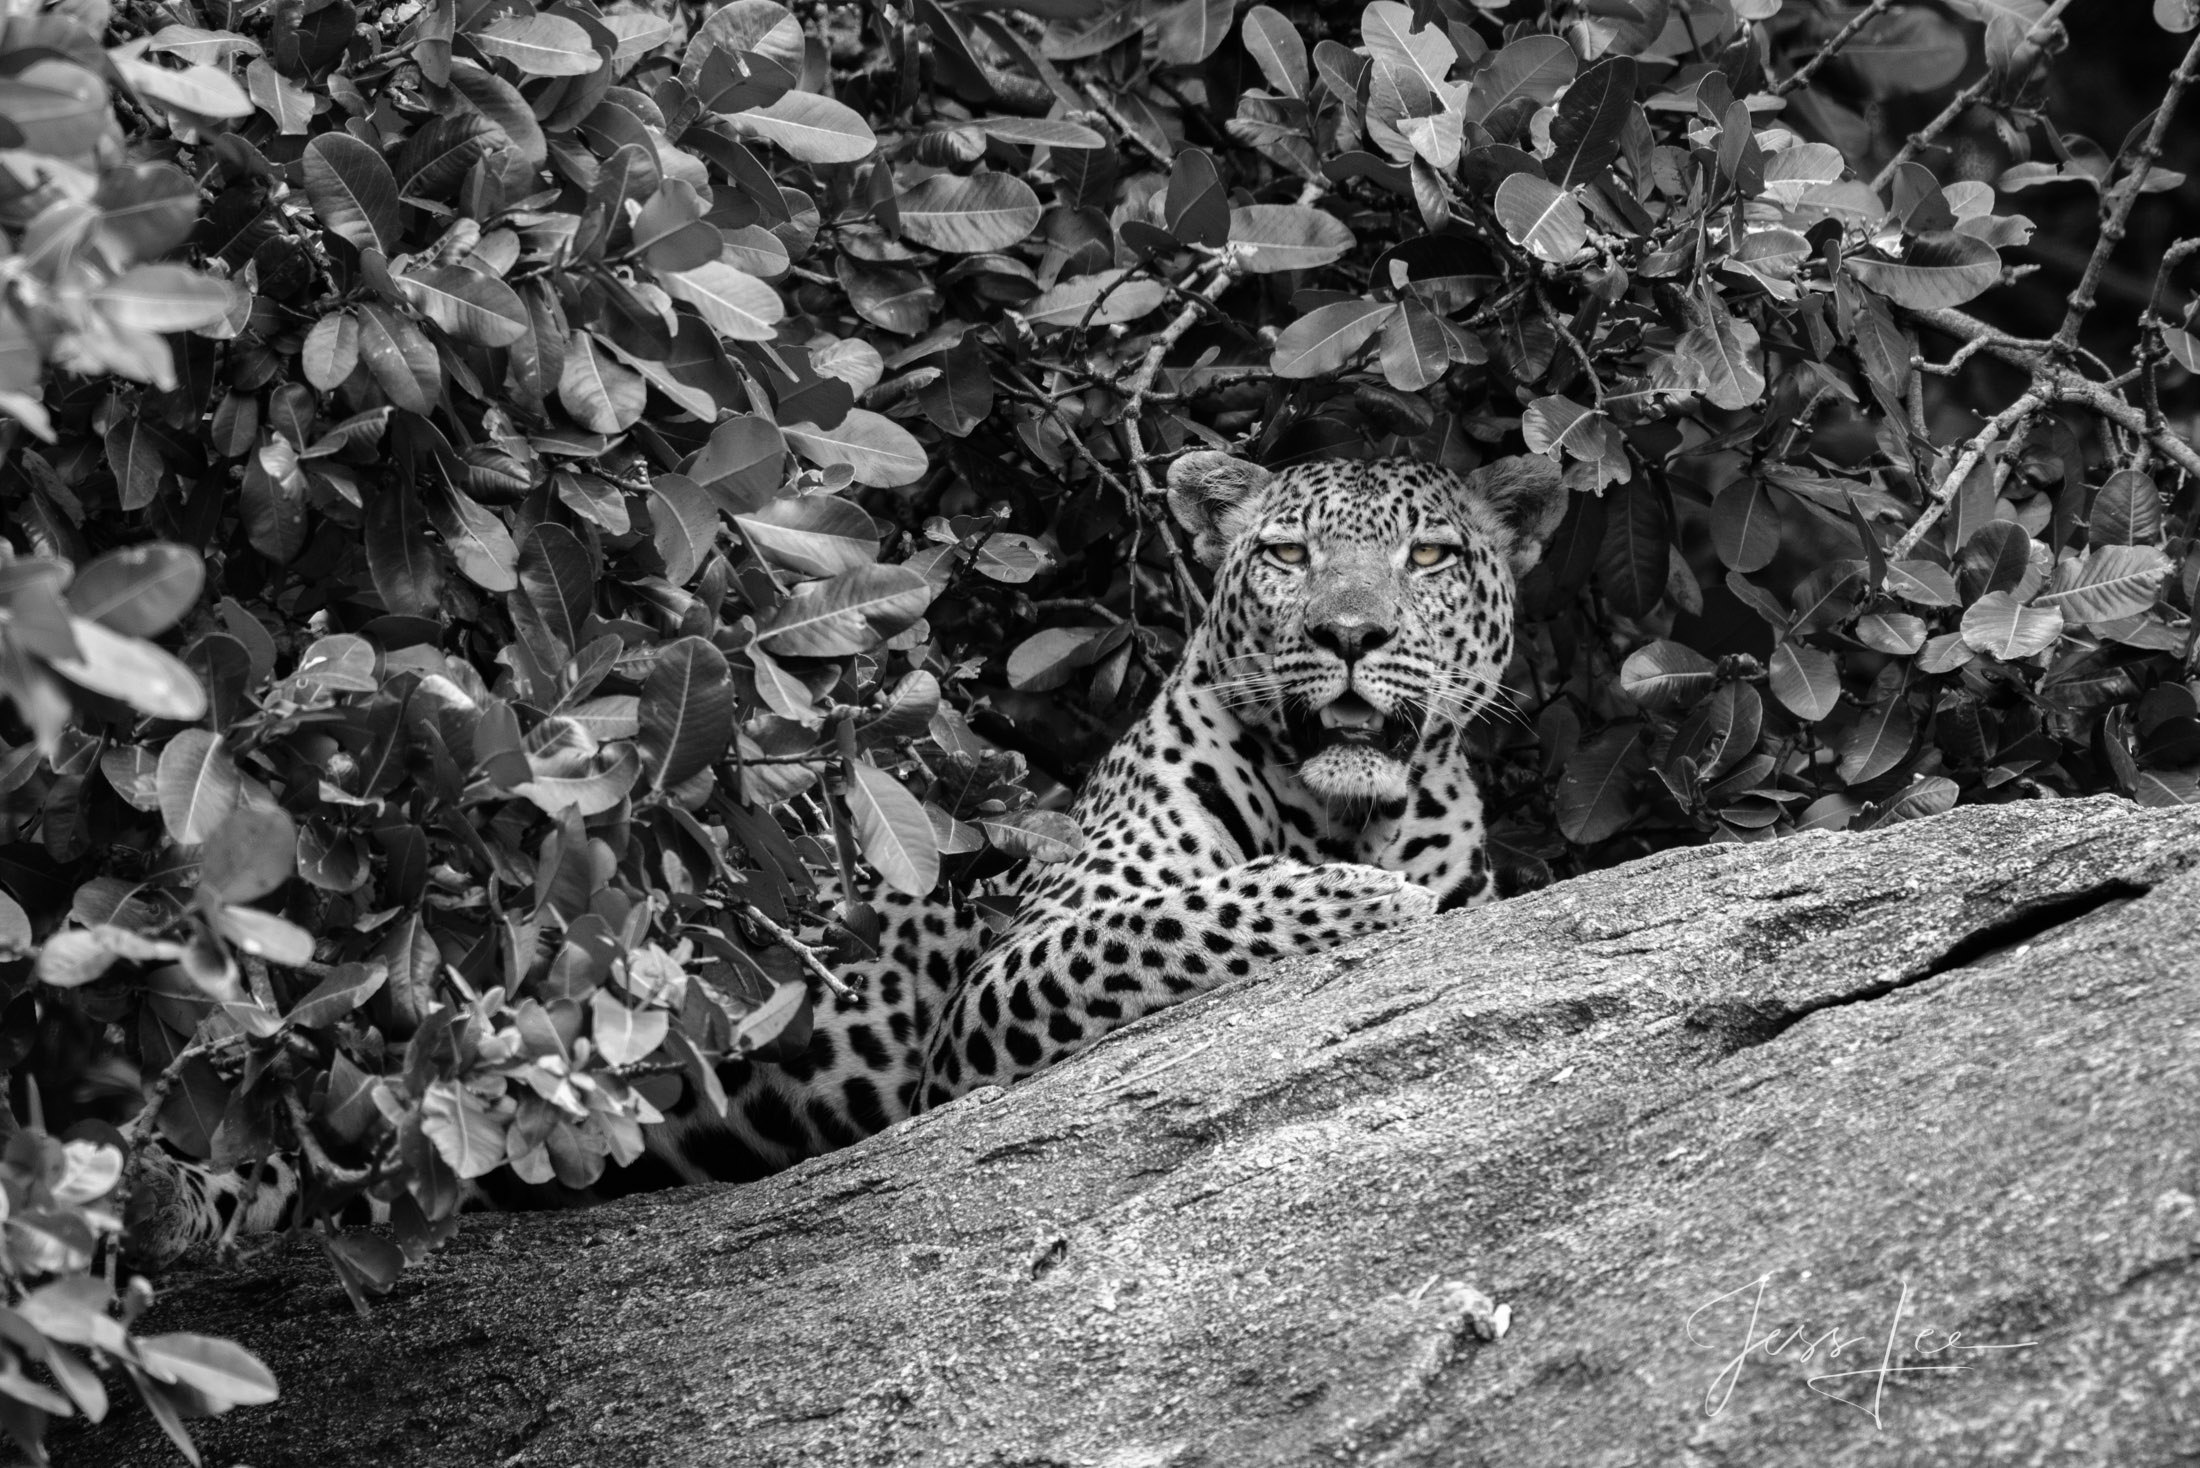 Black and White photo of African Leopard on warm rock as nigh falls.